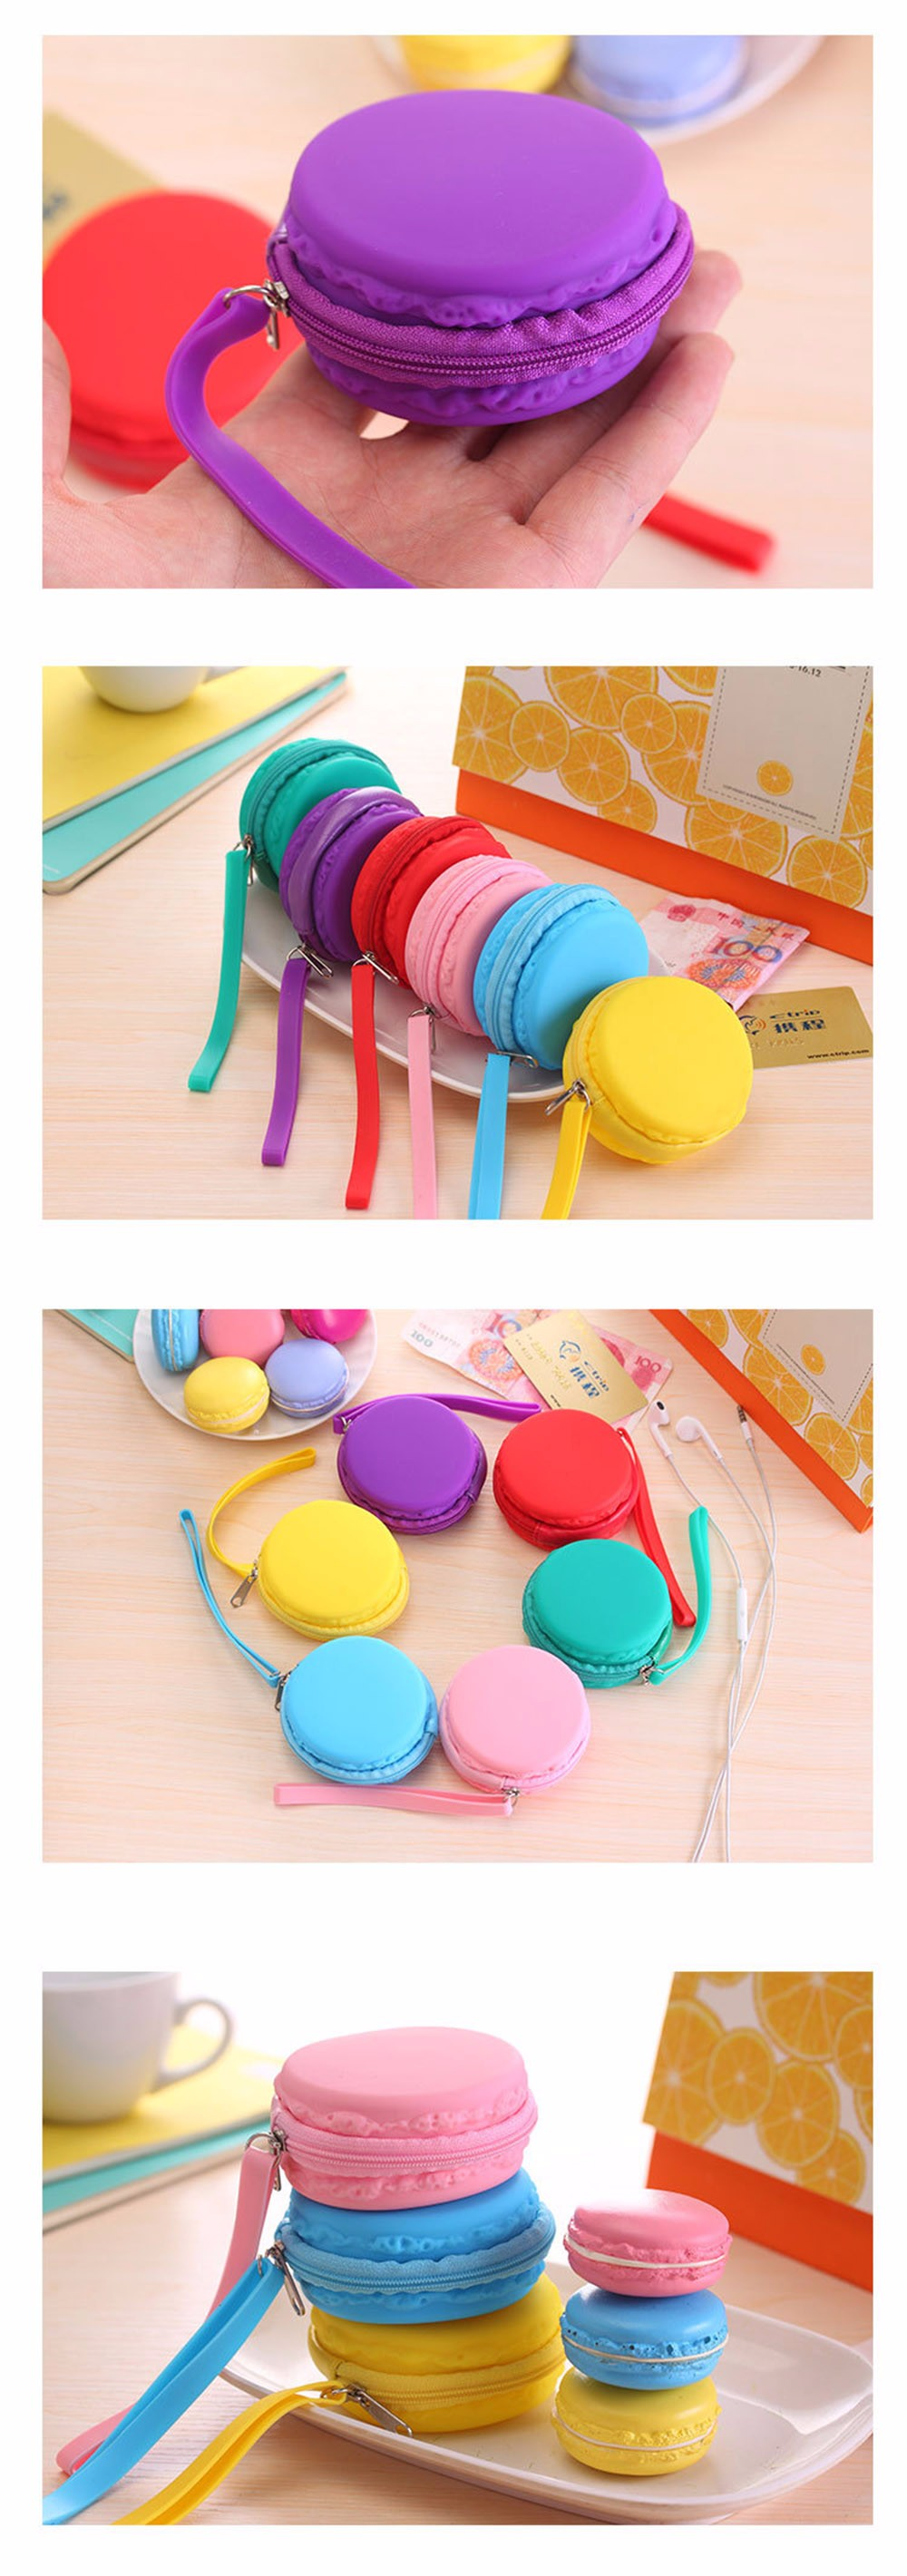 Colorful-Candy-Macaron-Portable-Earphone-Wire-Storage-Pouch-Headphone-Box-Bag-Coin-Purses-Wallet-Key-Zipper-Change-Bag-Storage-Case-HG0257 (16)